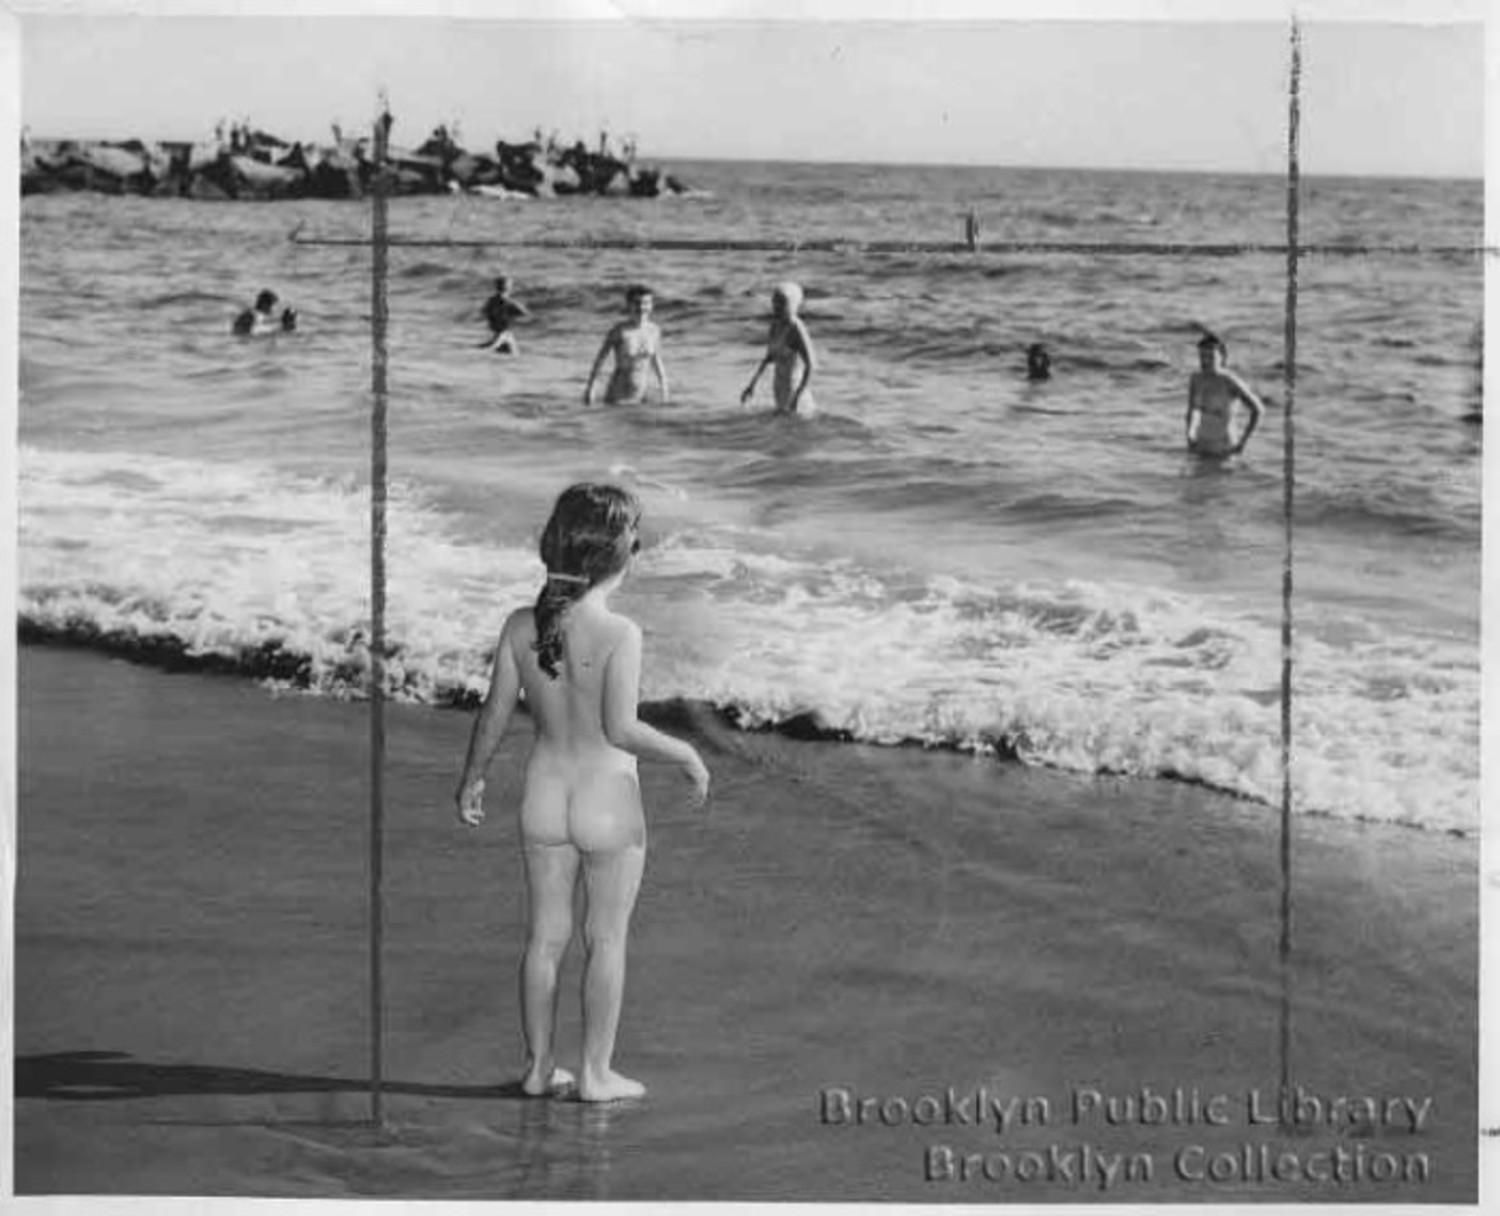 A young streaker in 1949.